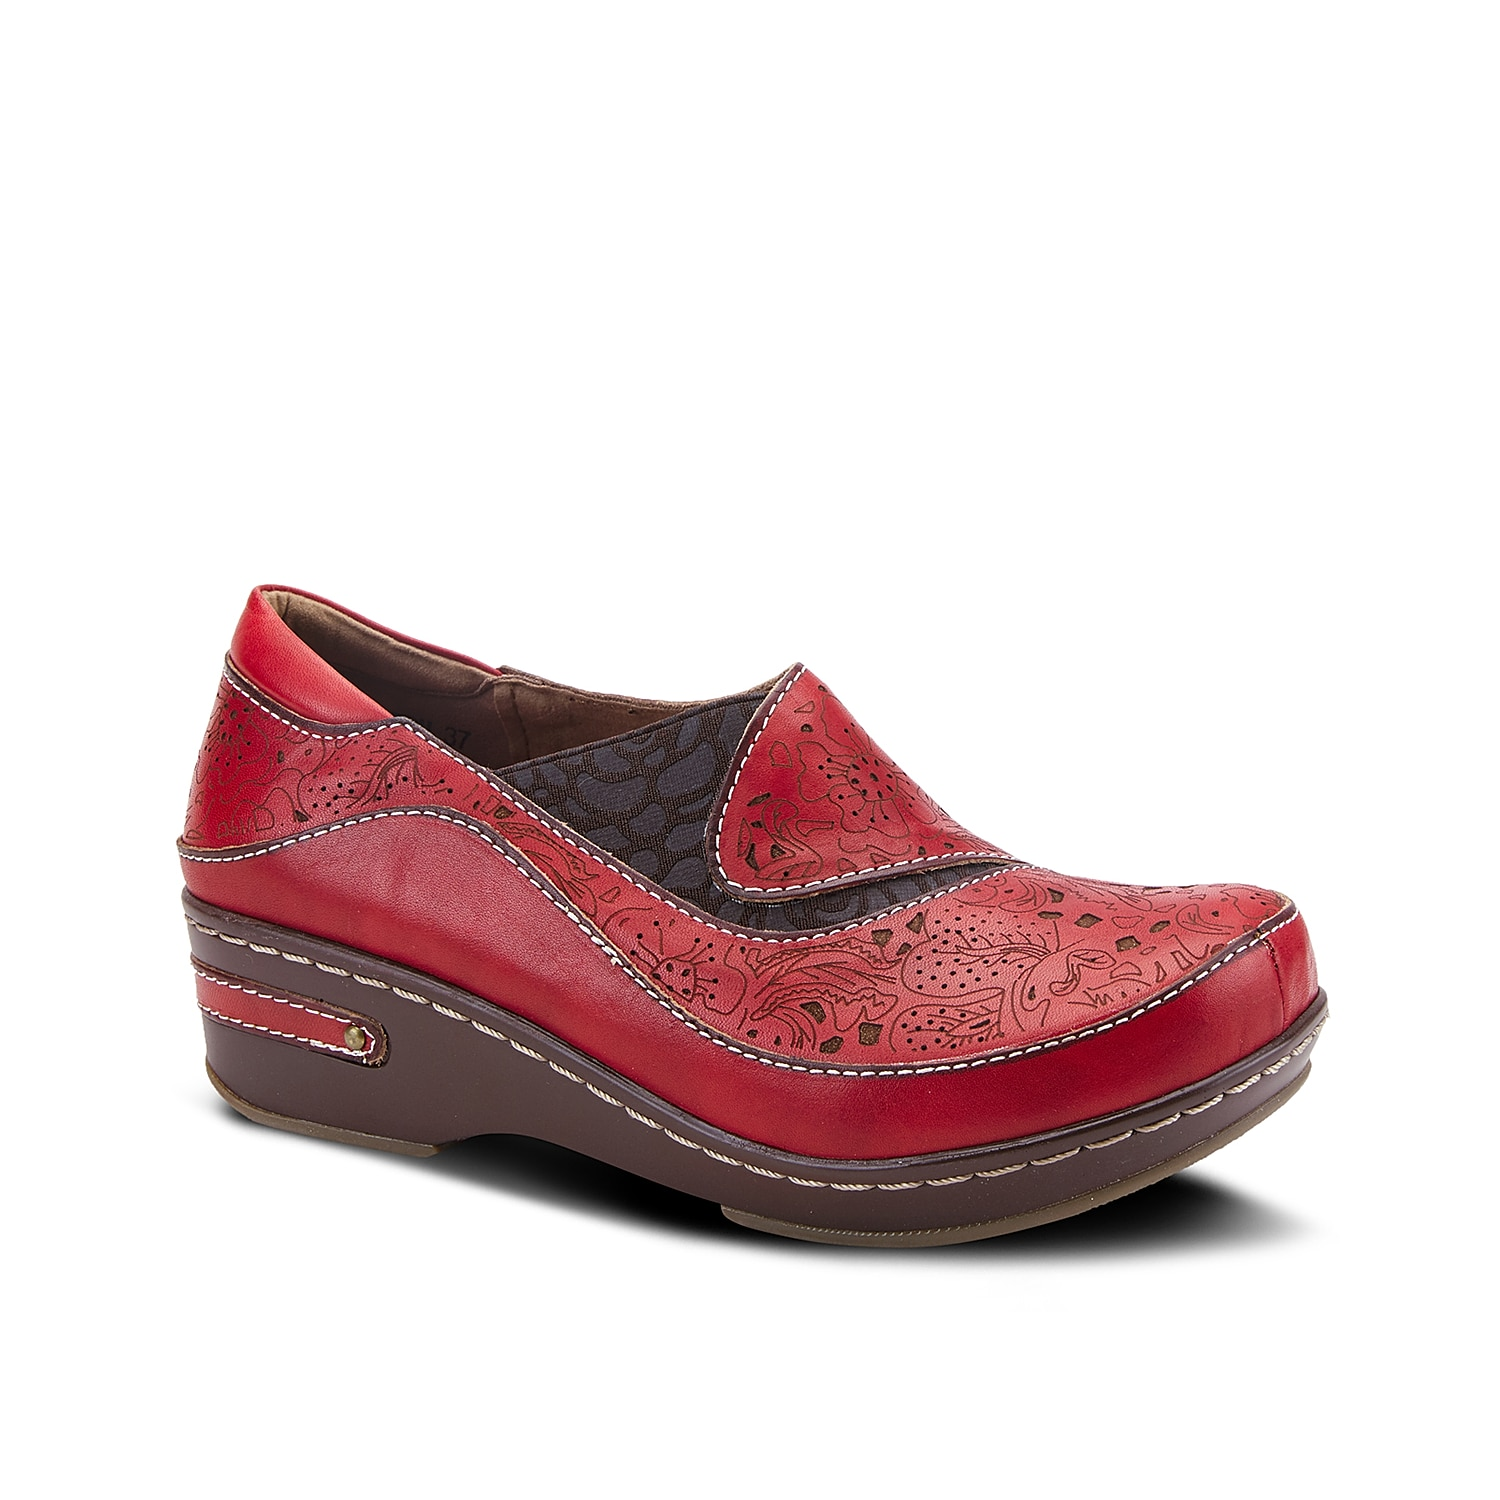 Playful design and practical comfort make the L\\\'Artiste Ranba clog a must-have. Sporting burnished leather upper with artistic laser-cut and etching details, this clog features textured side gore print, lightweight midsole and metal stud inlay on rubber sole.